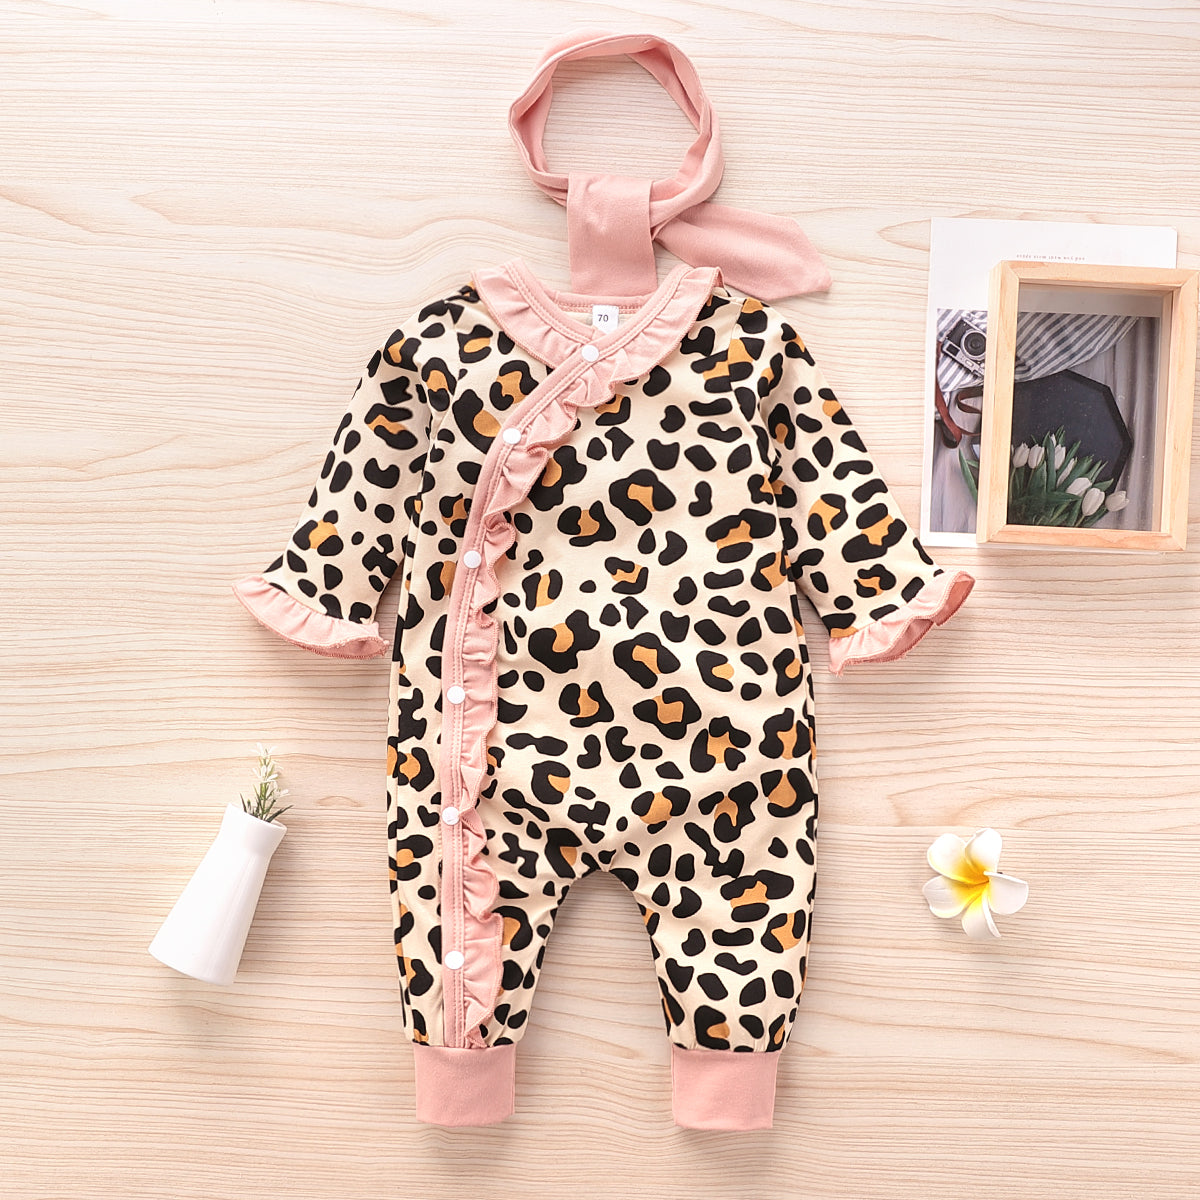 2-piece Baby Leopard Ruffled Jumpsuit with Headband Set